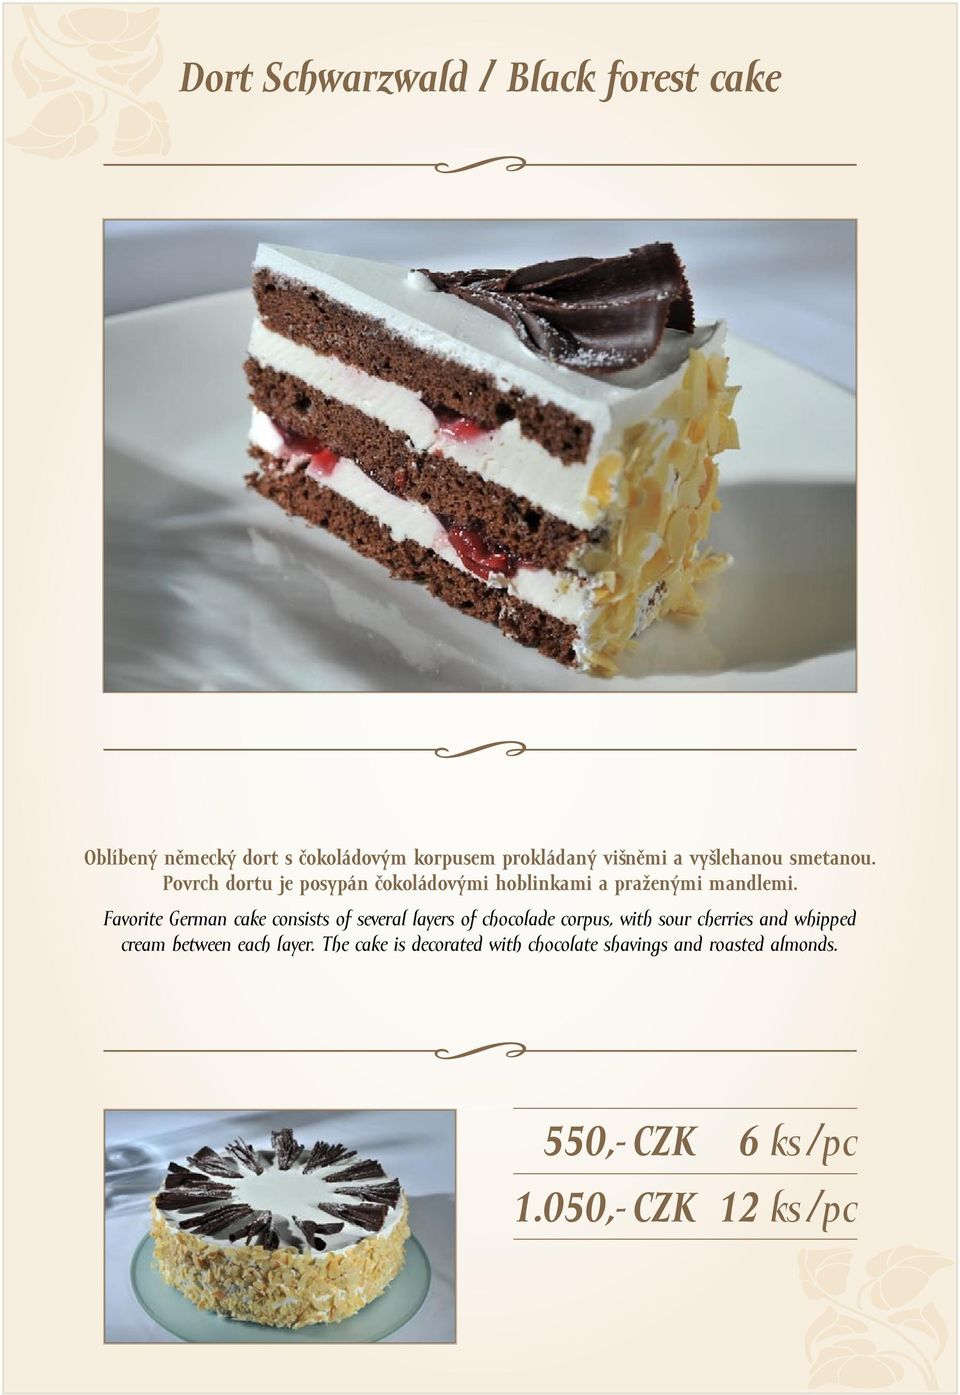 Favorite German cake consists of several layers of chocolade corpus, with sour cherries and whipped